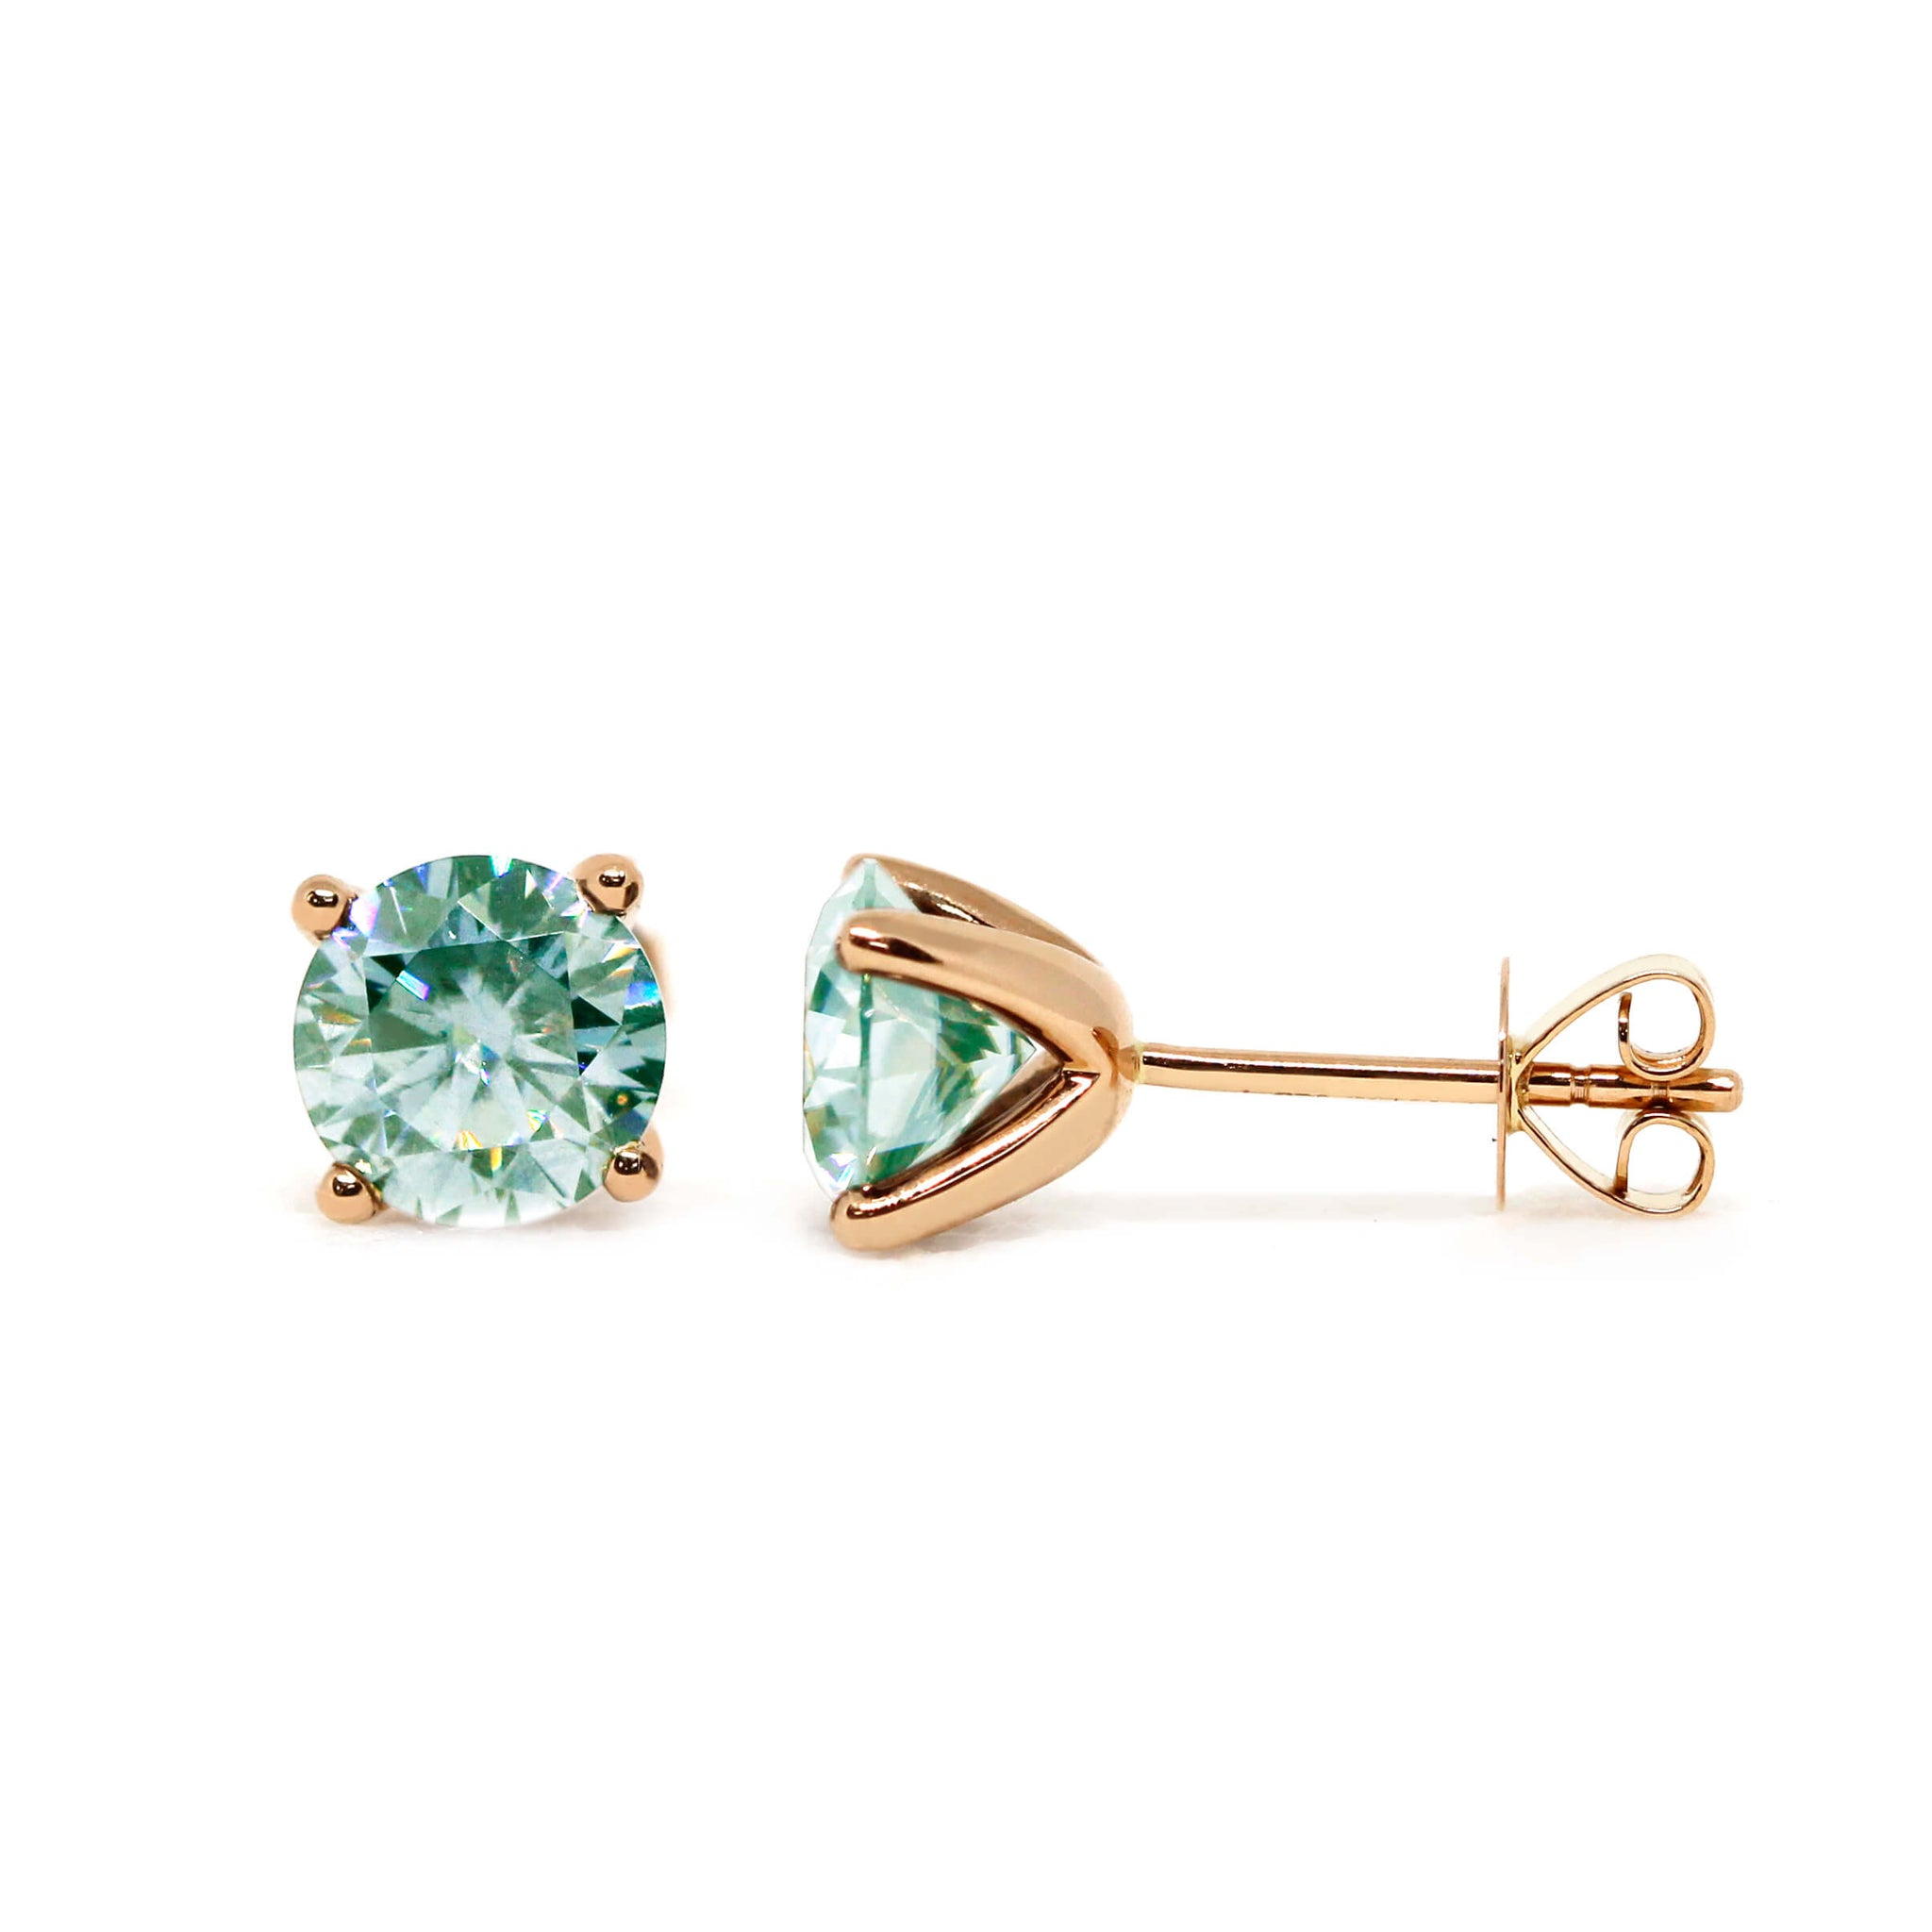 Mint Green Moissanite Solitaire 18K Yellow Gold Stud Earrings